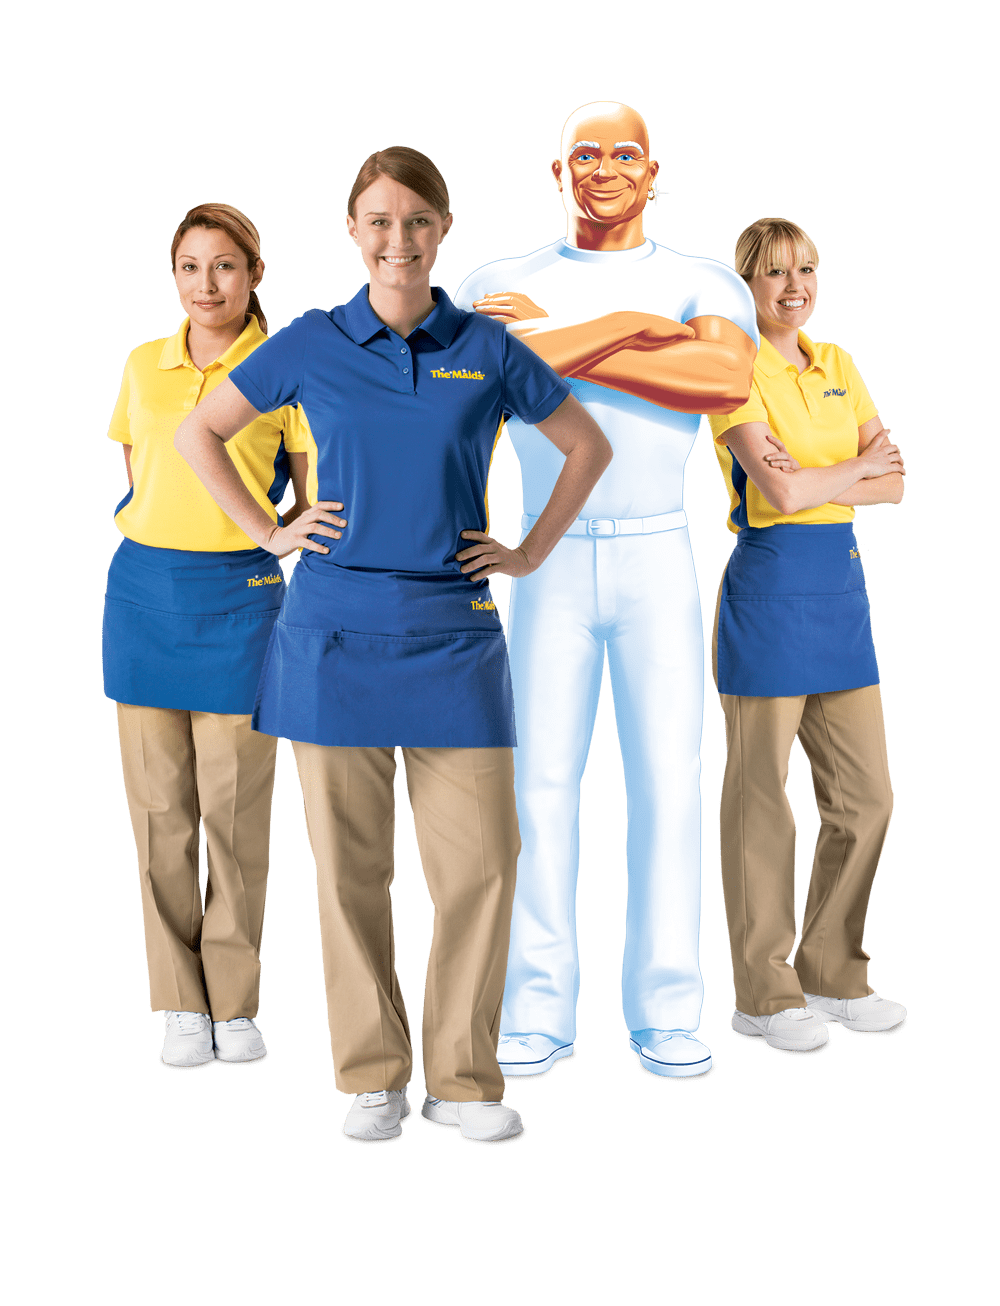 The Maids House Cleaning - The Maids in Orange County Home Cleaning